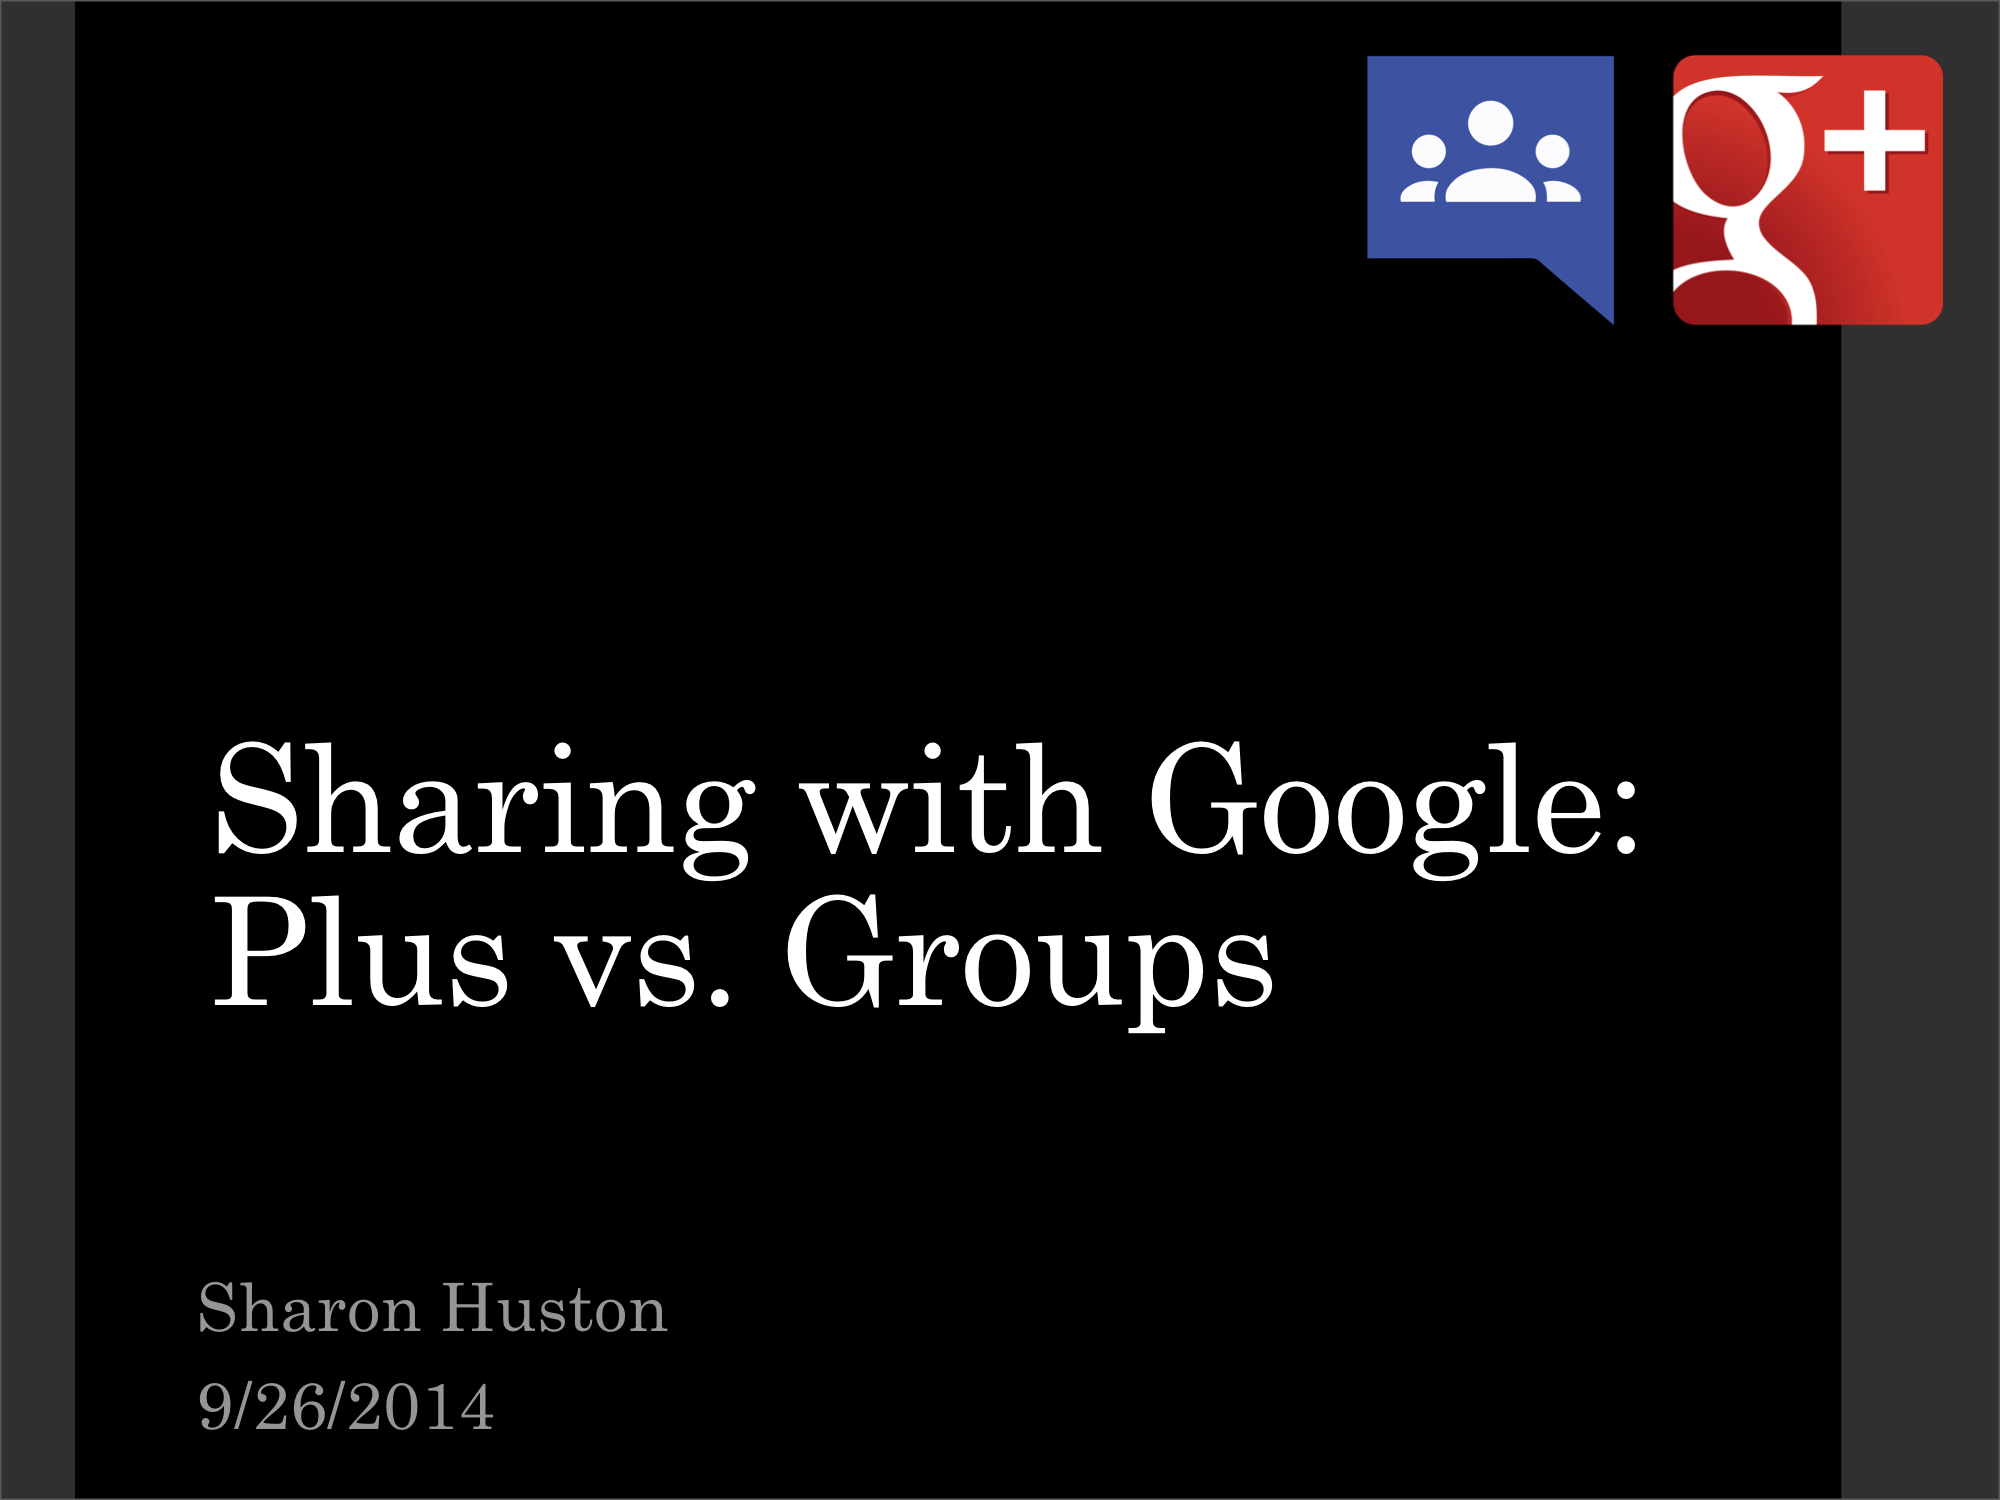 This presentation discusses the trade-offs between Google Groups and Google Plus Communities.